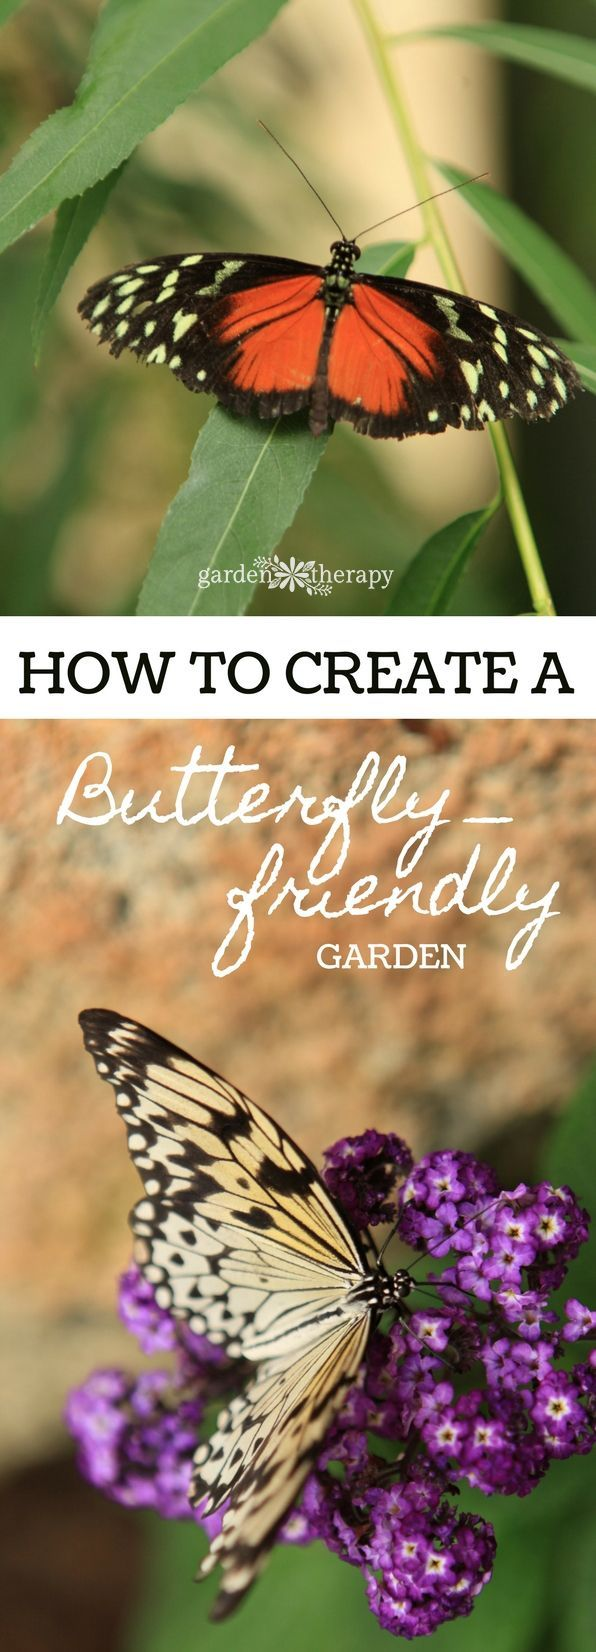 Everything you need to know to create a butterfly garden